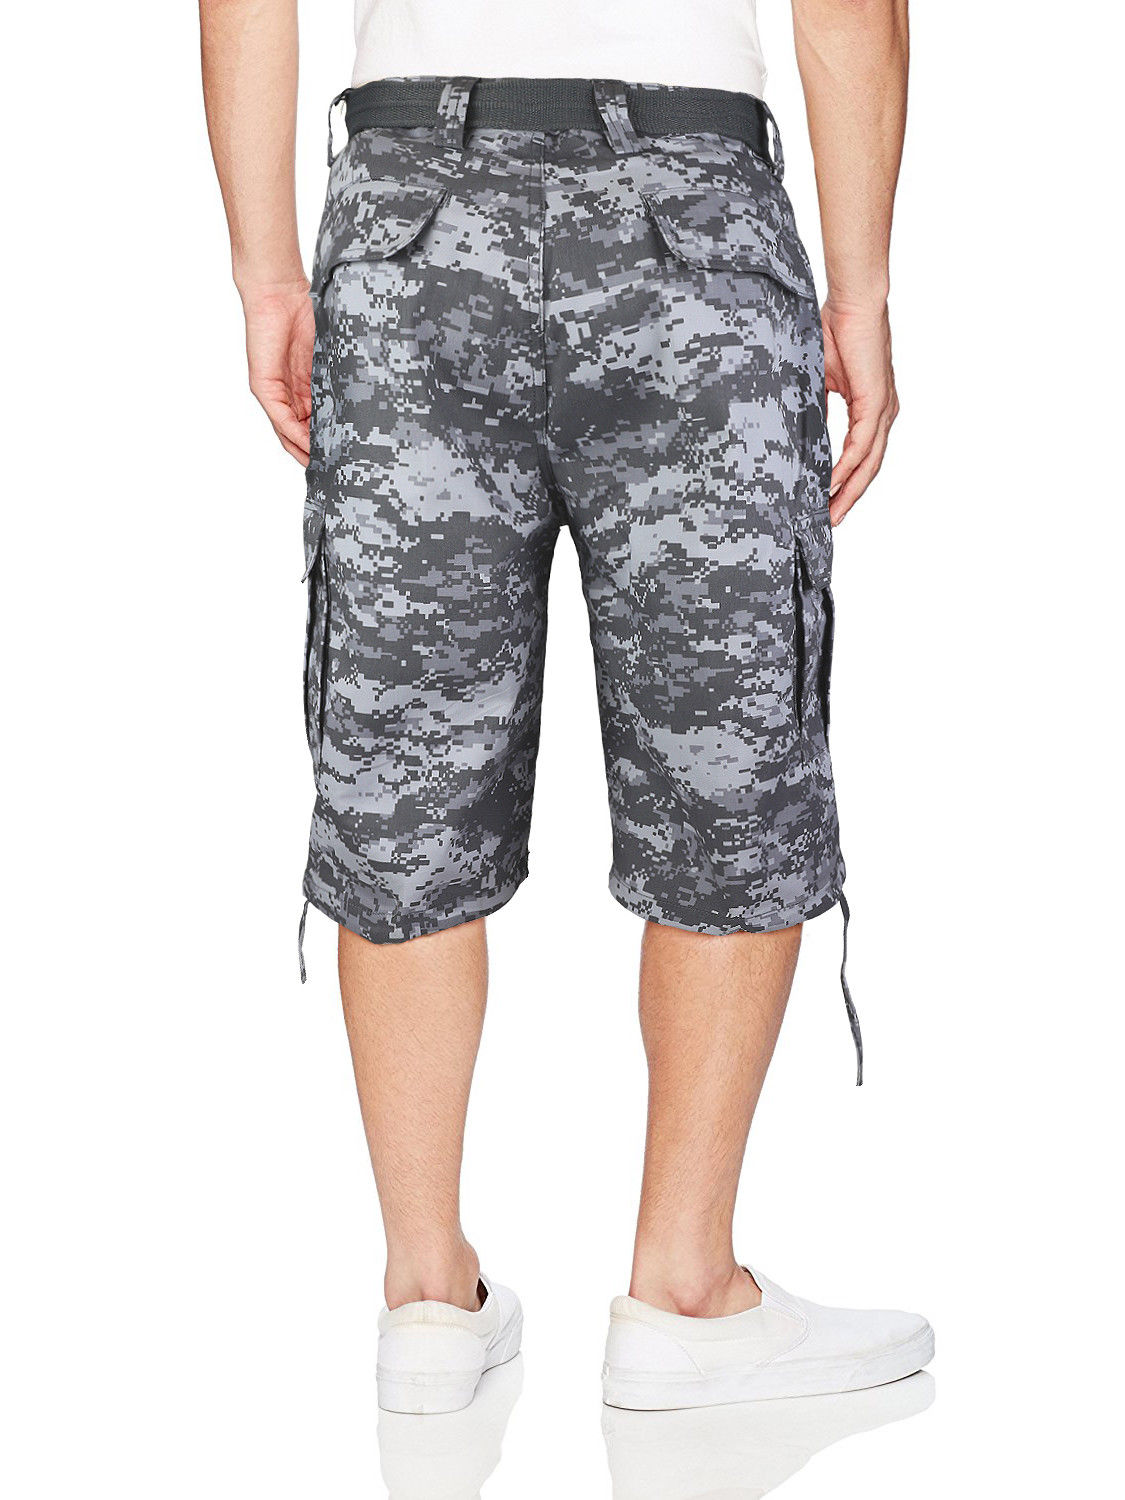 Men-039-s-Tactical-Military-Army-Camo-Camouflage-Slim-Fit-Cargo-Shorts-With-Belt thumbnail 7